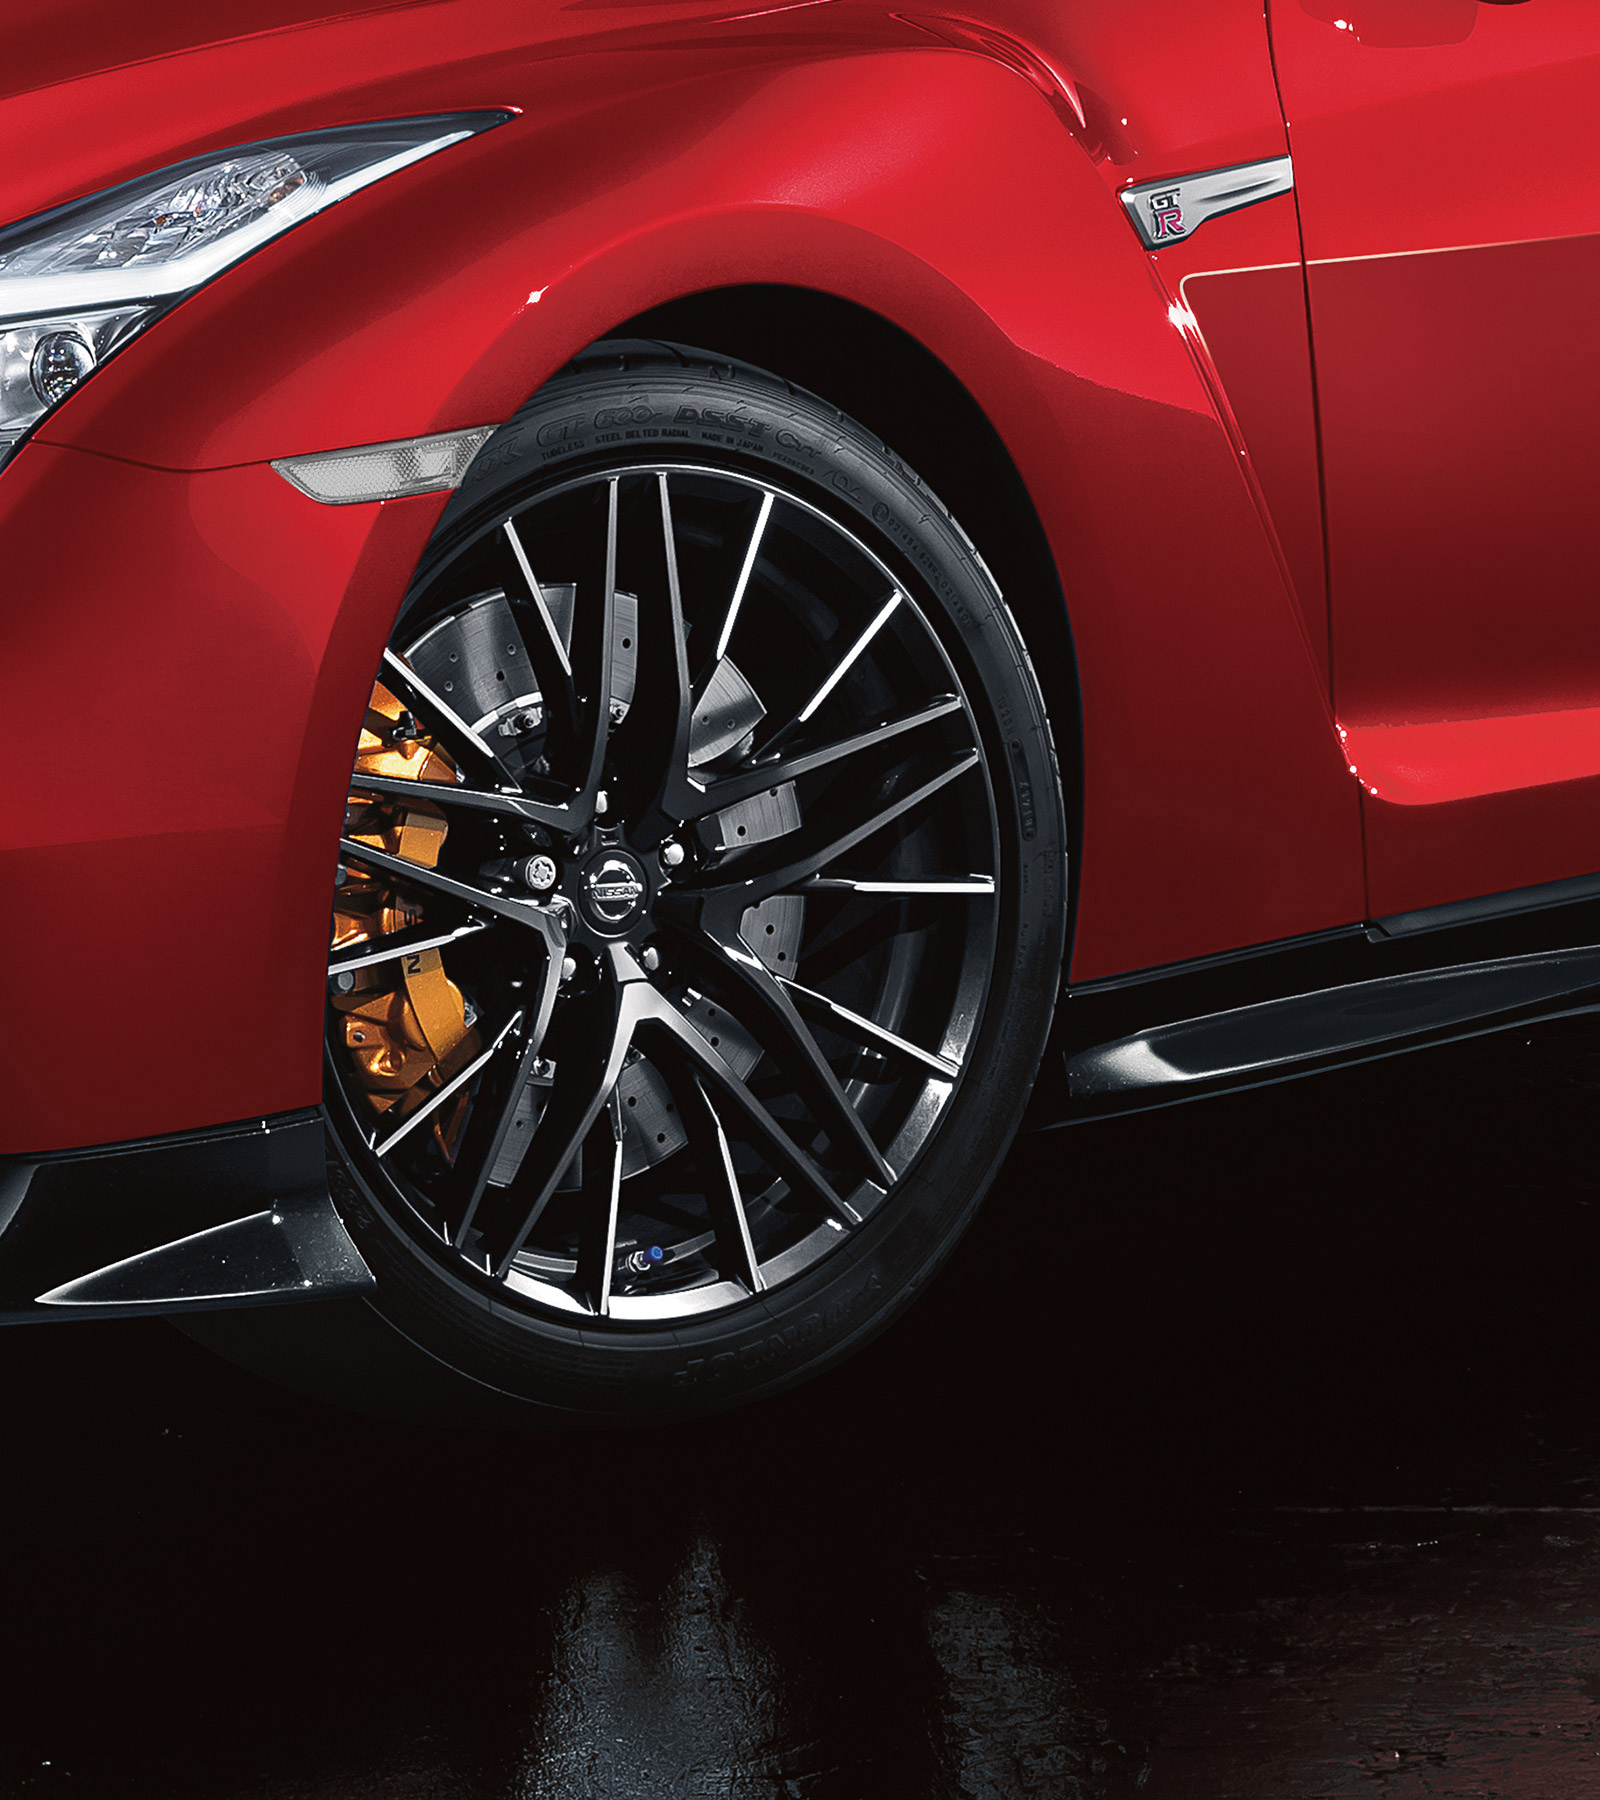 Nissan GT-R forged aluminium wheels